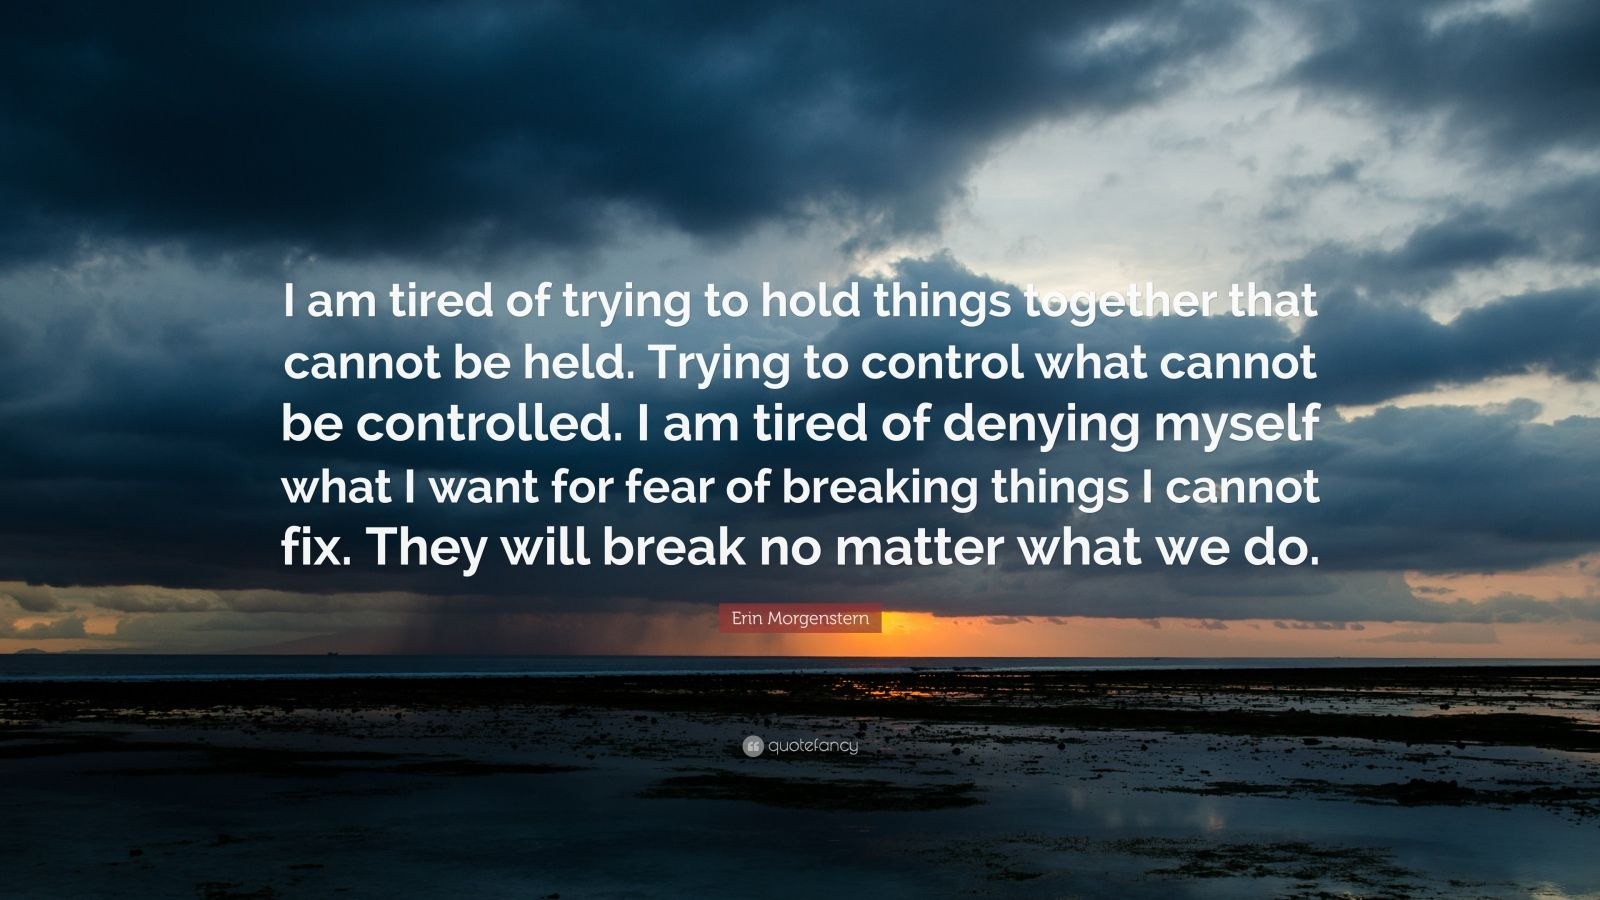 """Erin Morgenstern Quote: """"I am tired of trying to hold things together that cannot be held. Trying to control what cannot be controlled. I am tired of denying myself what I want for fear of breaking things I cannot fix. They will break no matter what we do."""""""